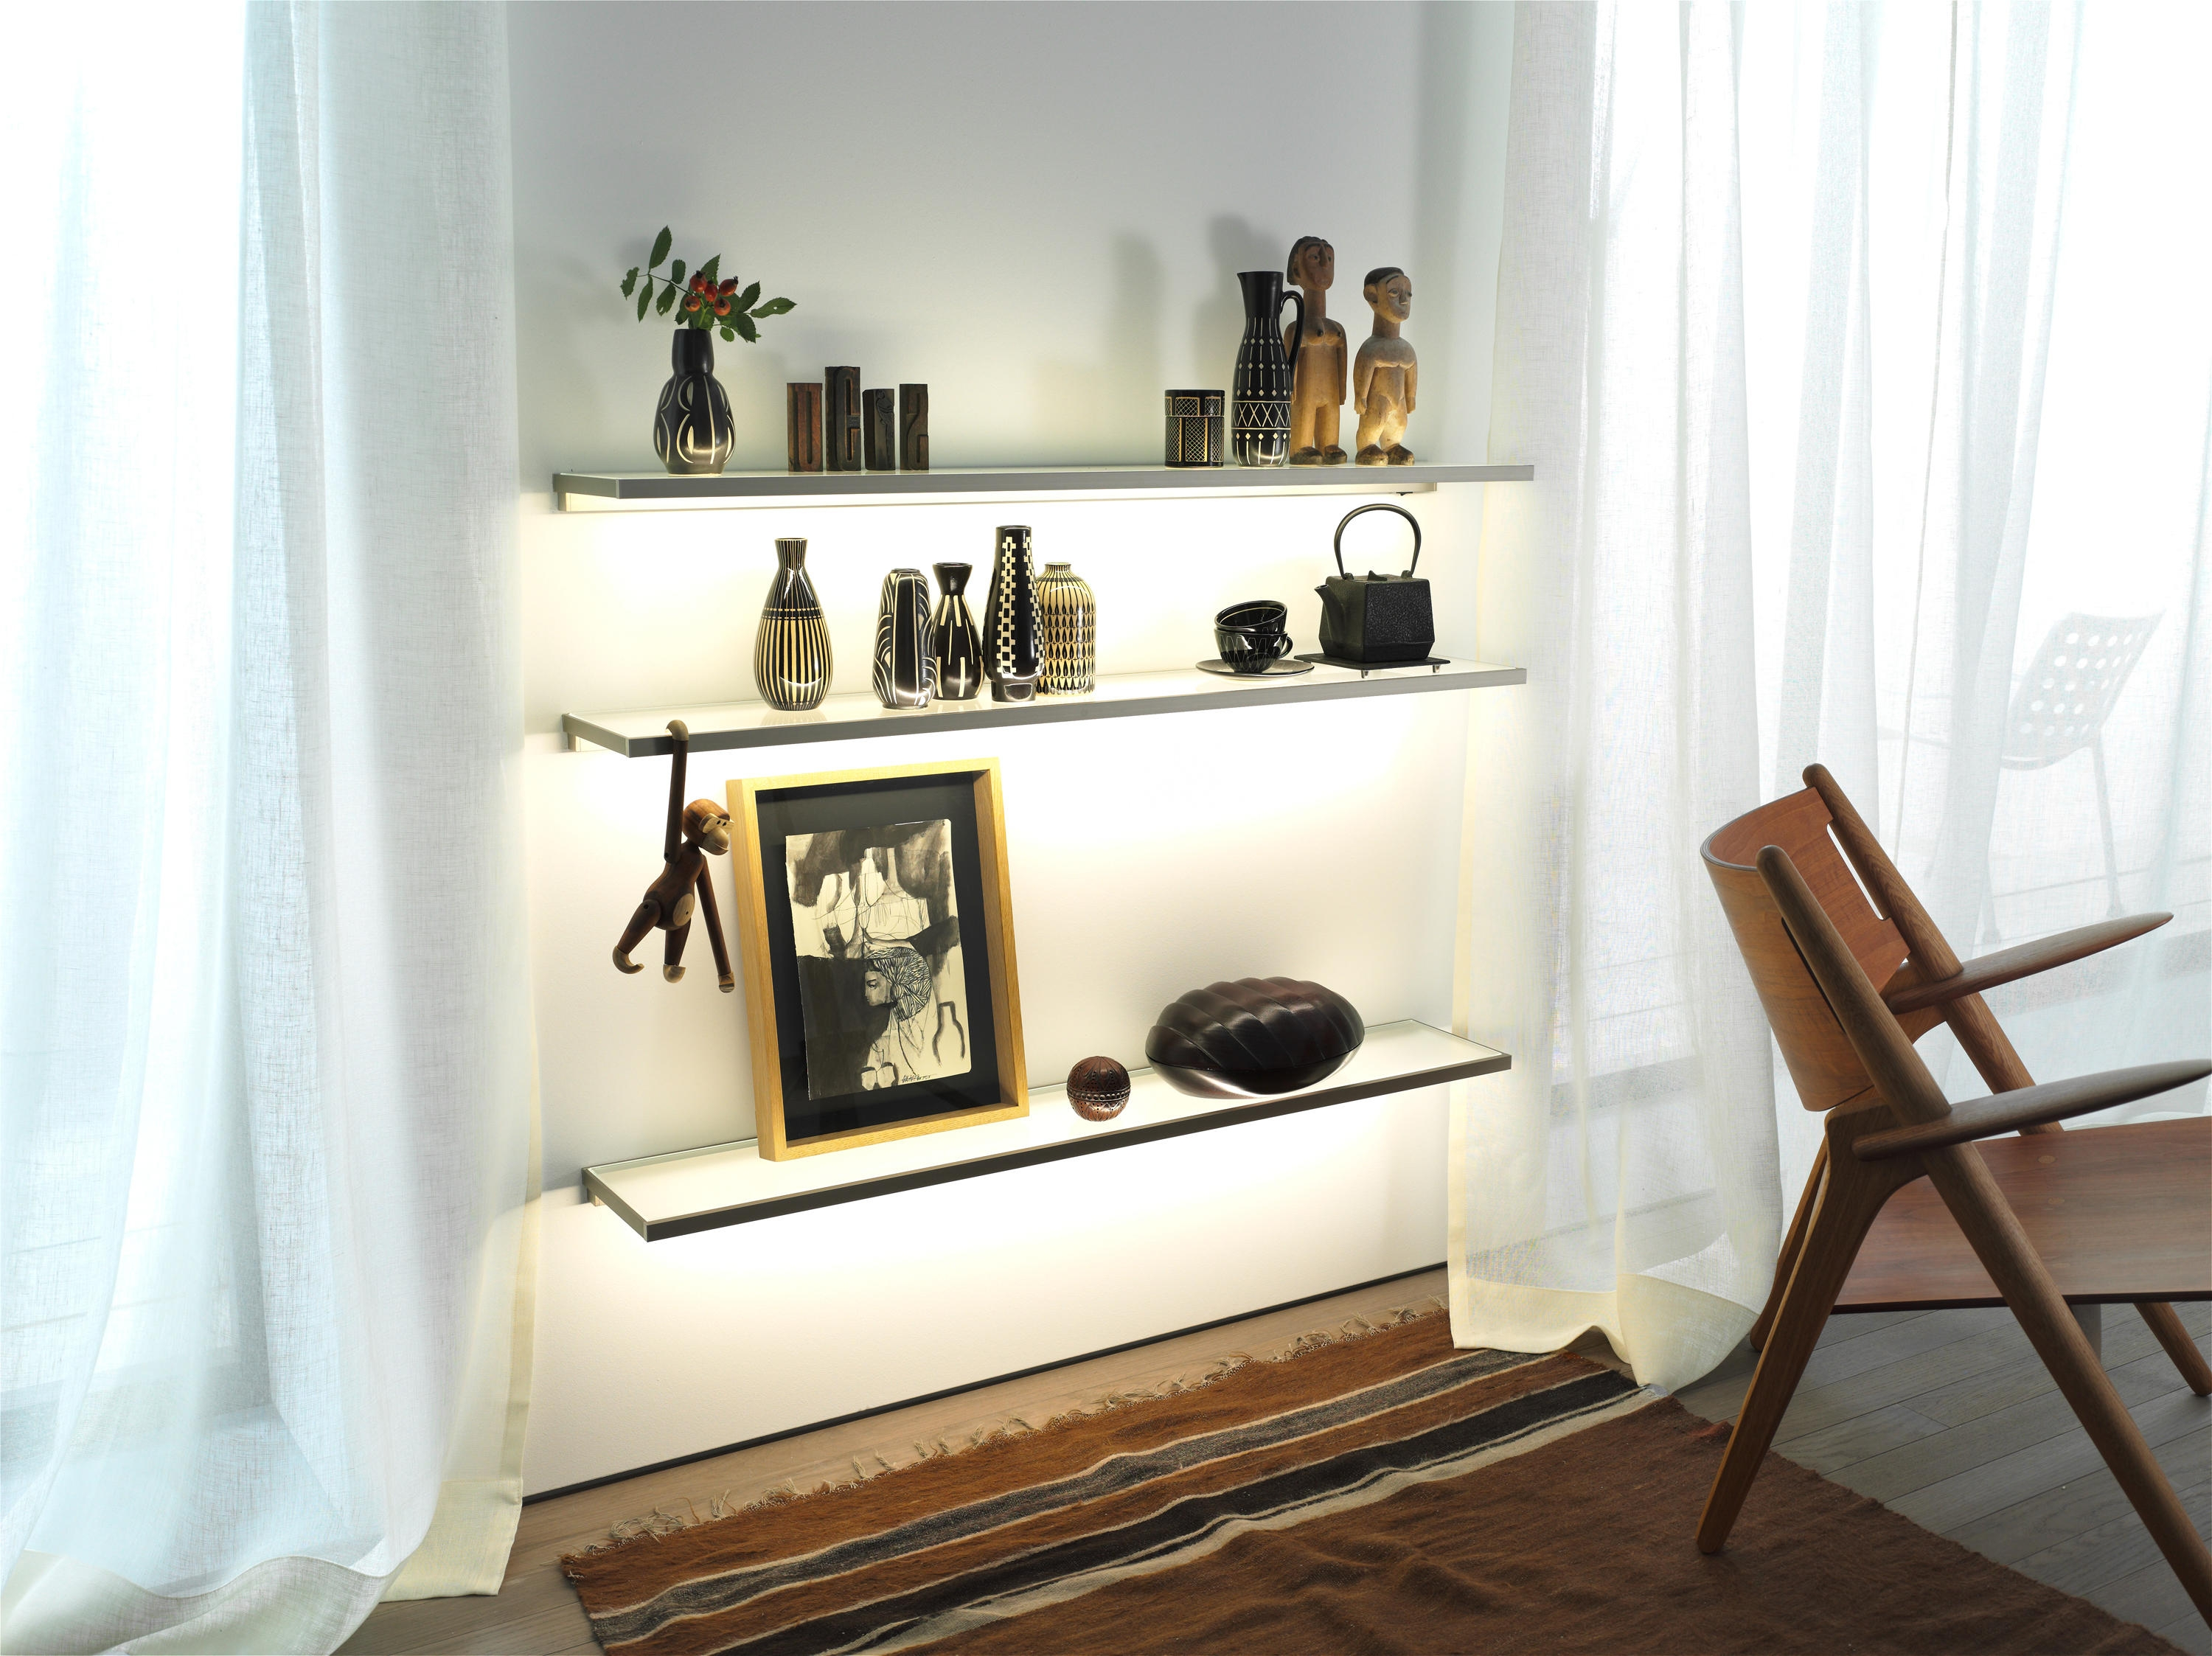 Glass Shelf Gera Light System 4 Illuminated Shelving From Gera For Living Room Glass Shelves (#4 of 12)